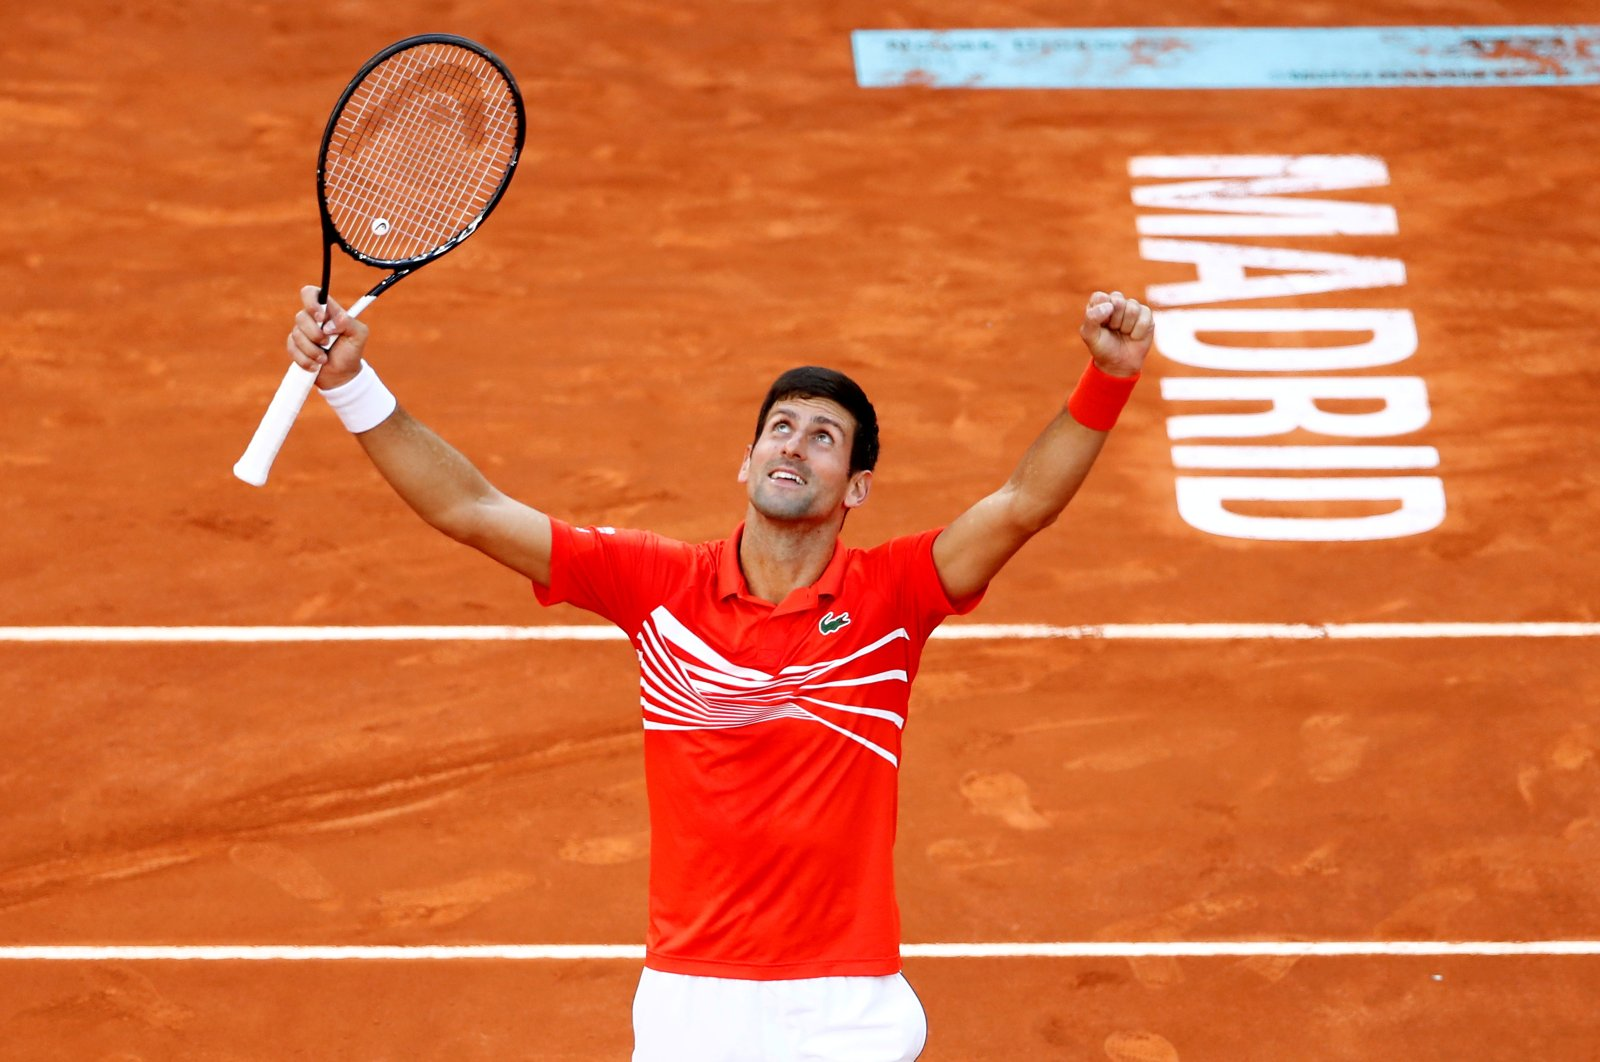 Serbia's Novak Djokovic celebrates winning the Madrid Open tennis tournament in Madrid, Spain, May 12, 2019. (Reuters Photo)